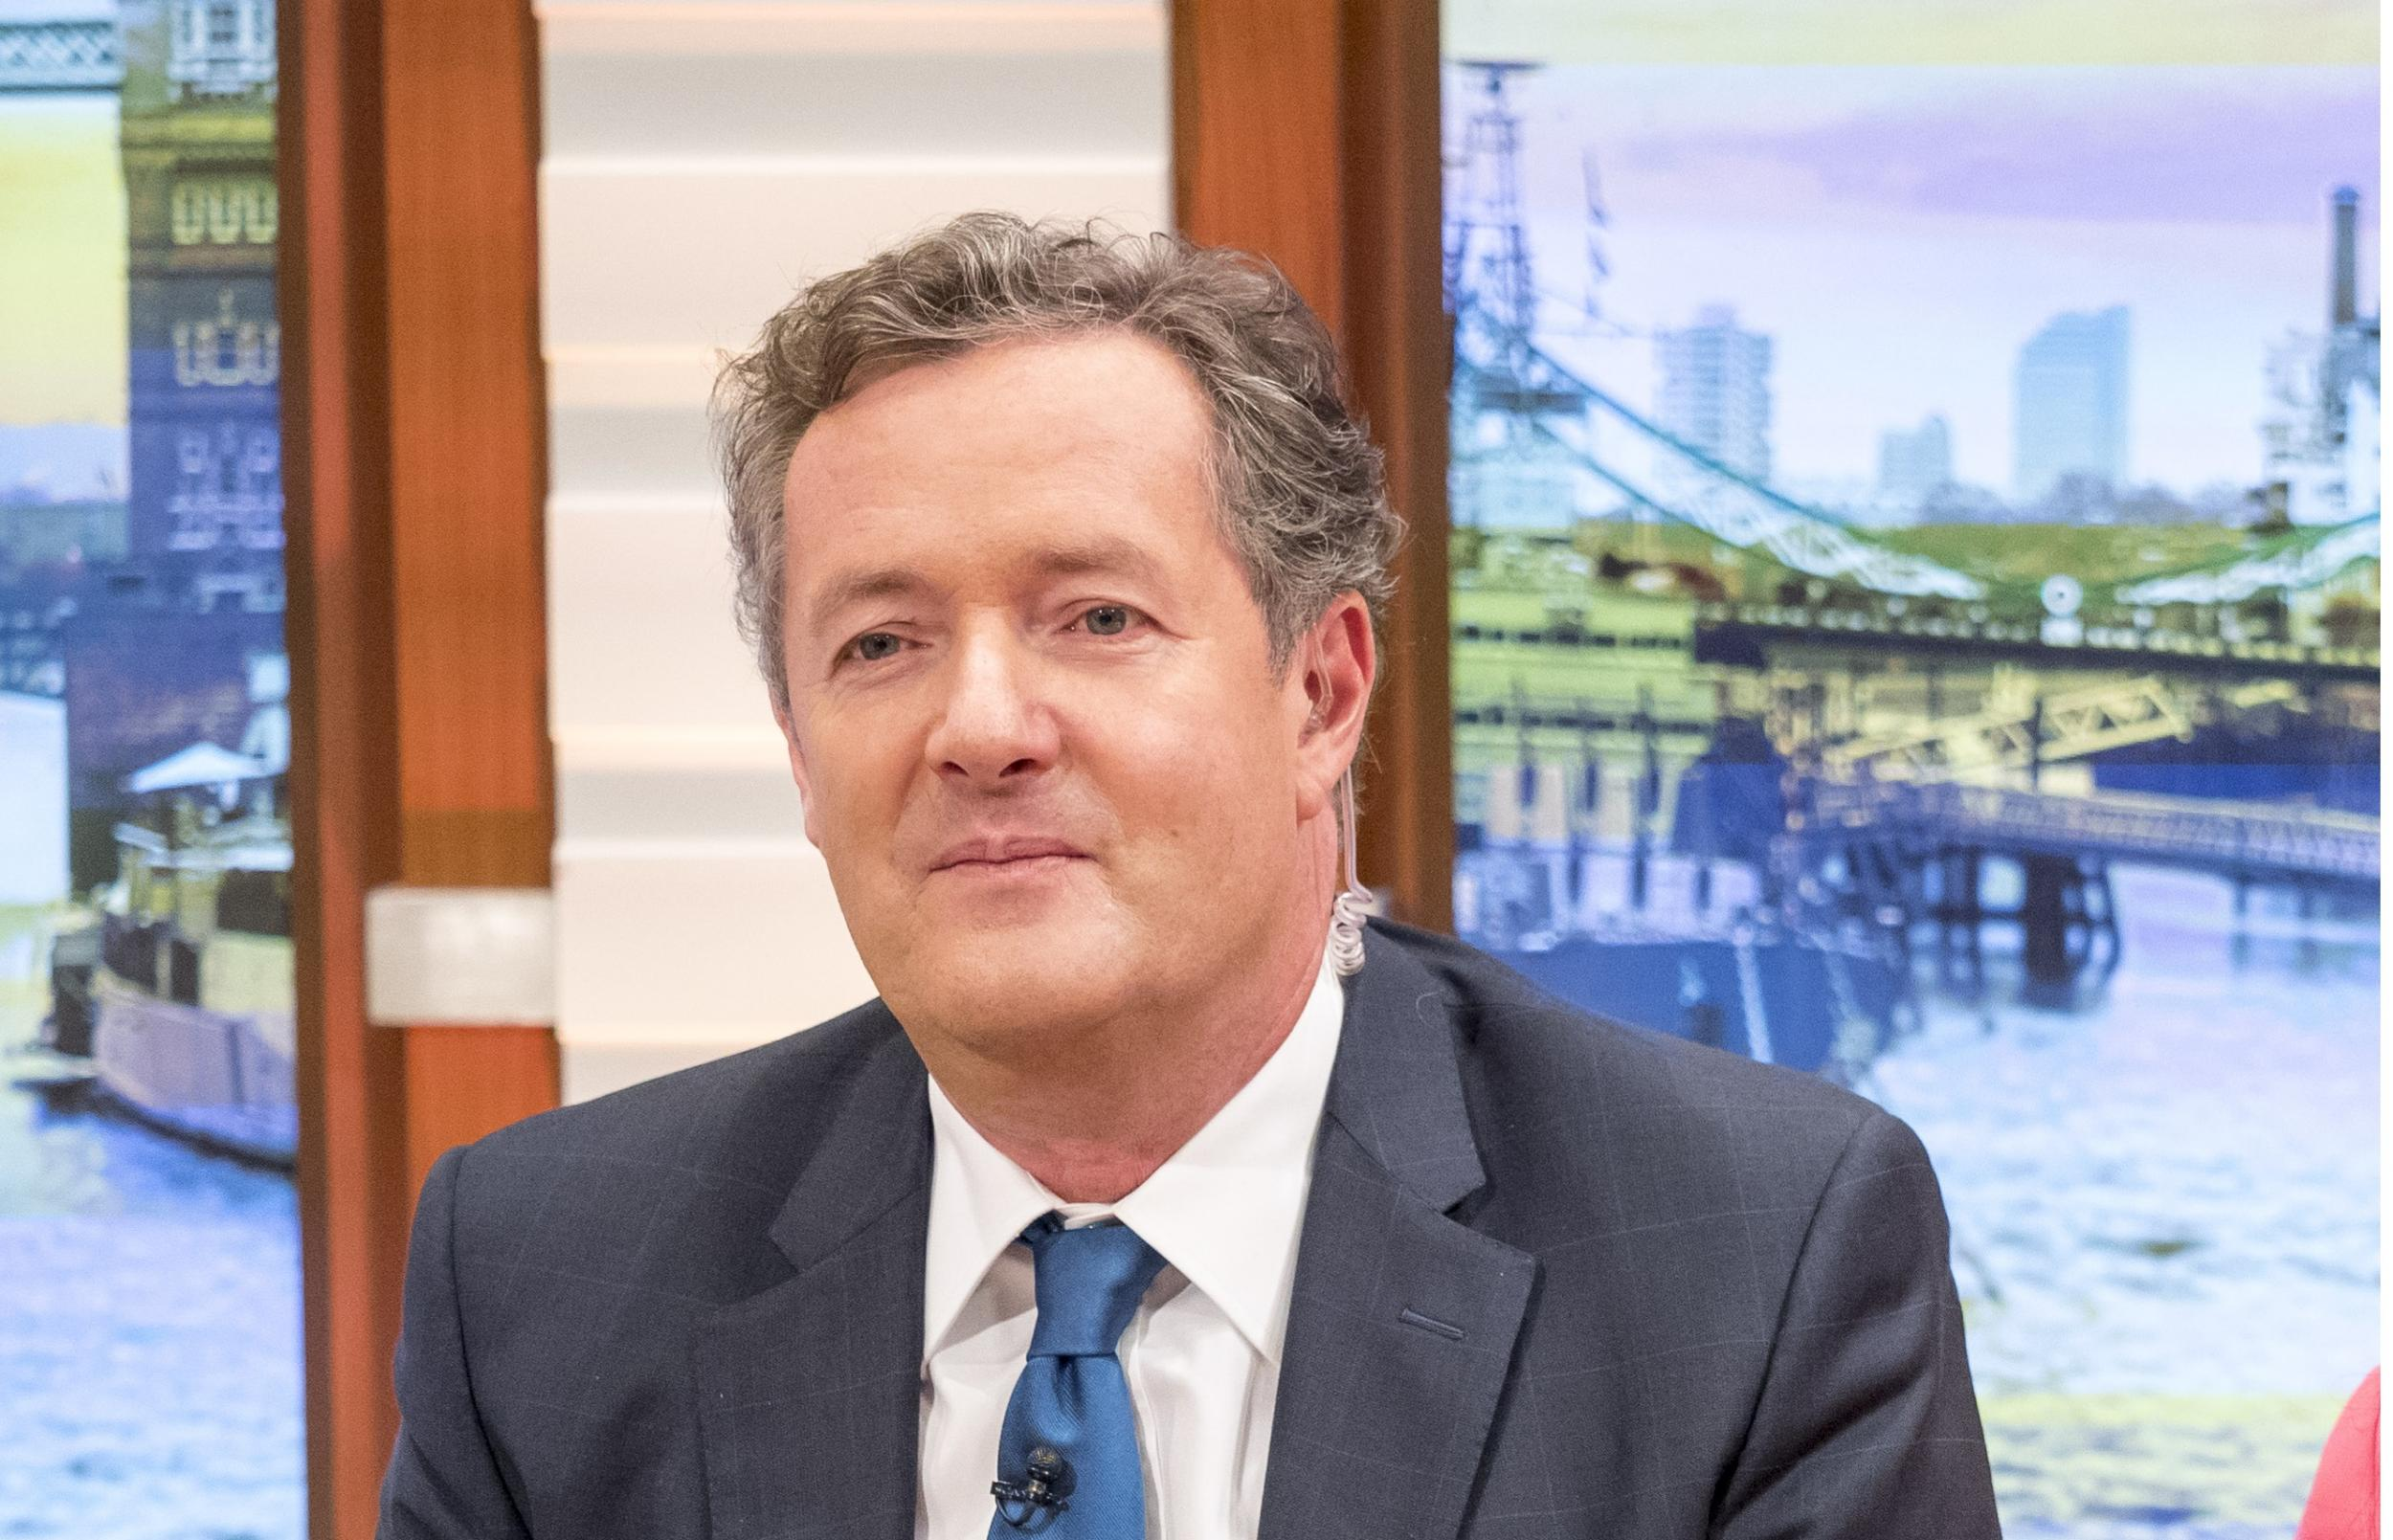 piers morgan - photo #45